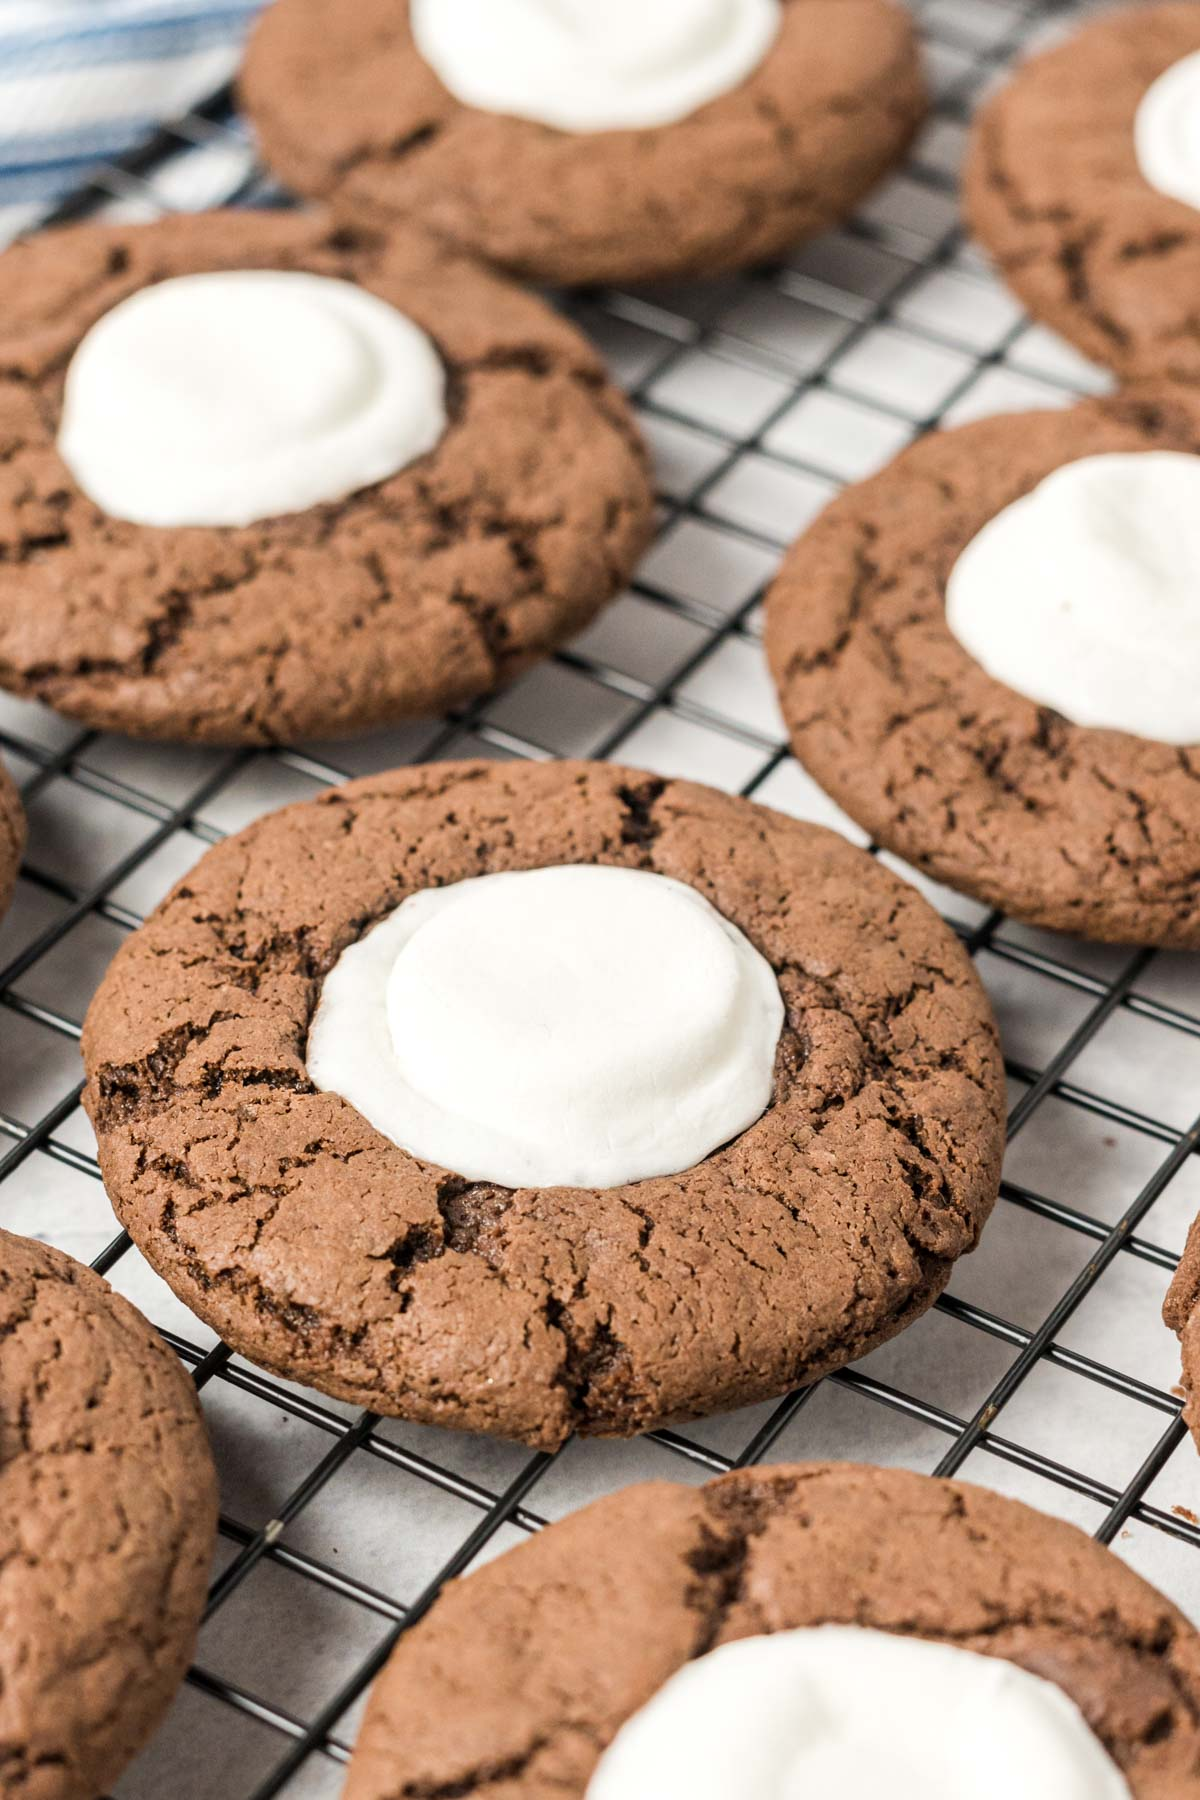 Chocolate cookies with melted marshmallow on top.